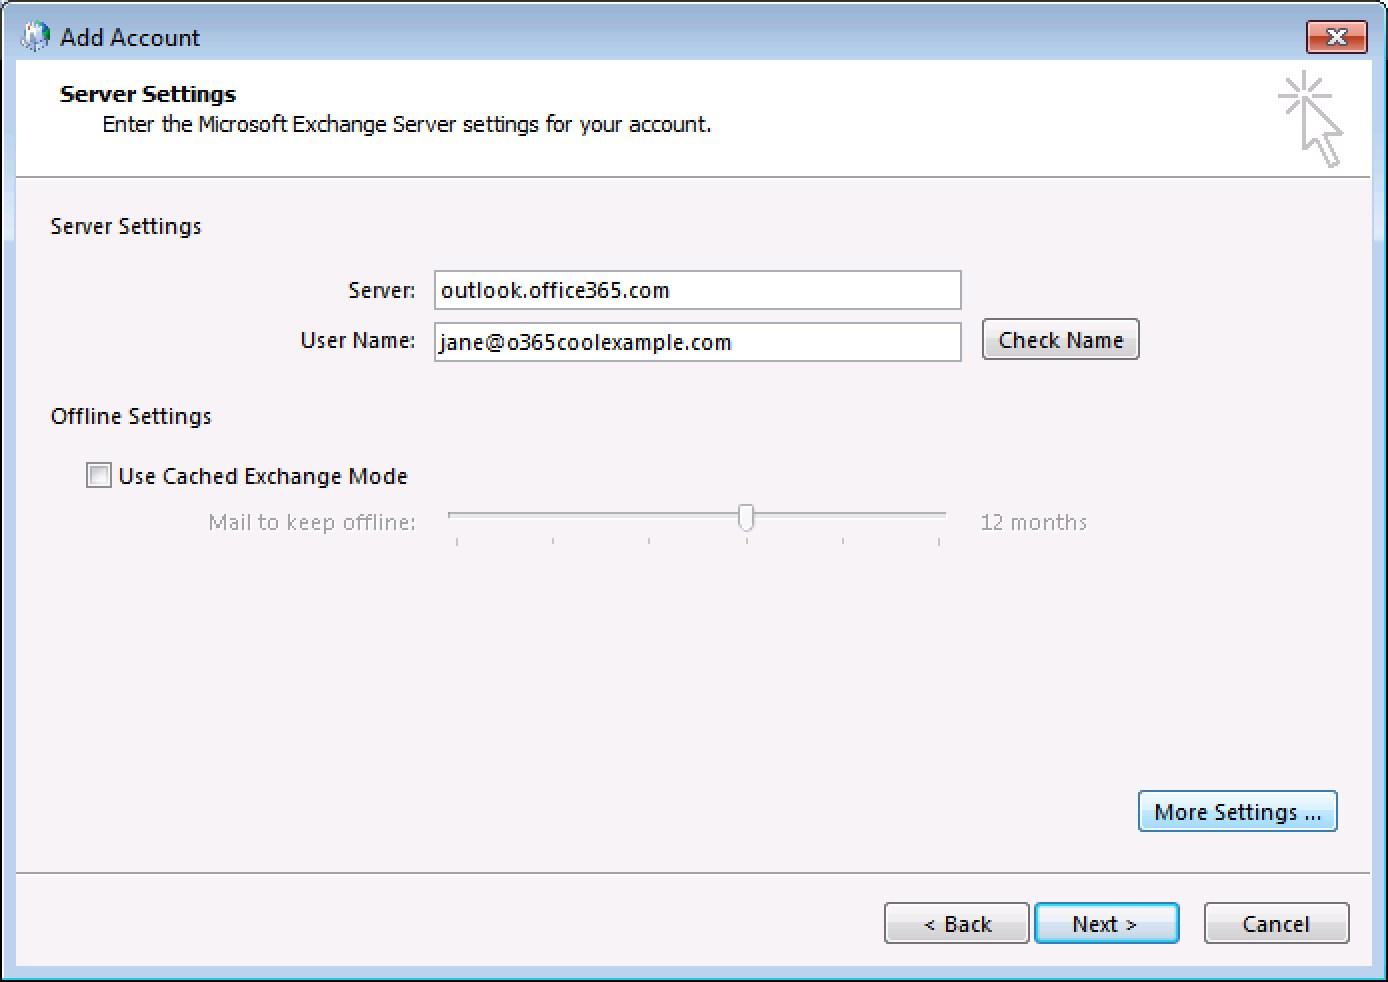 Outlook manually set up email office 365 from godaddy godaddy help us - Office 365 server settings outlook ...